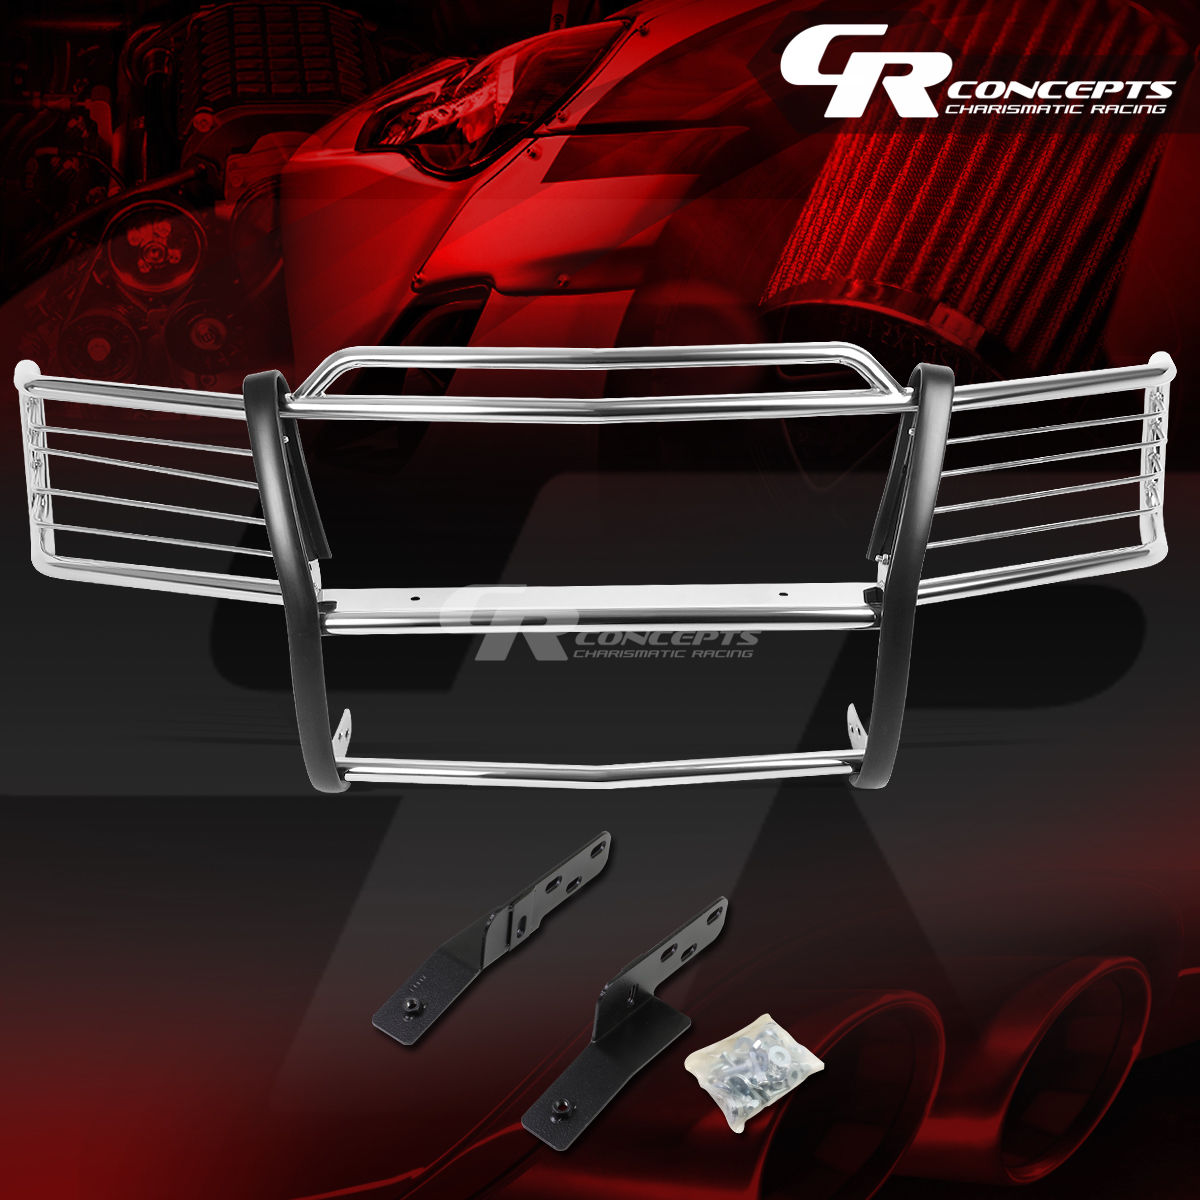 グリル クロムステンレスブラシグリルガードフレーム00-06 TAHOE / SUBURBAN 1500 CHROME STAINLESS STEEL BRUSH GRILL GUARD FRAME FOR 00-06 TAHOE/SUBURBAN 1500